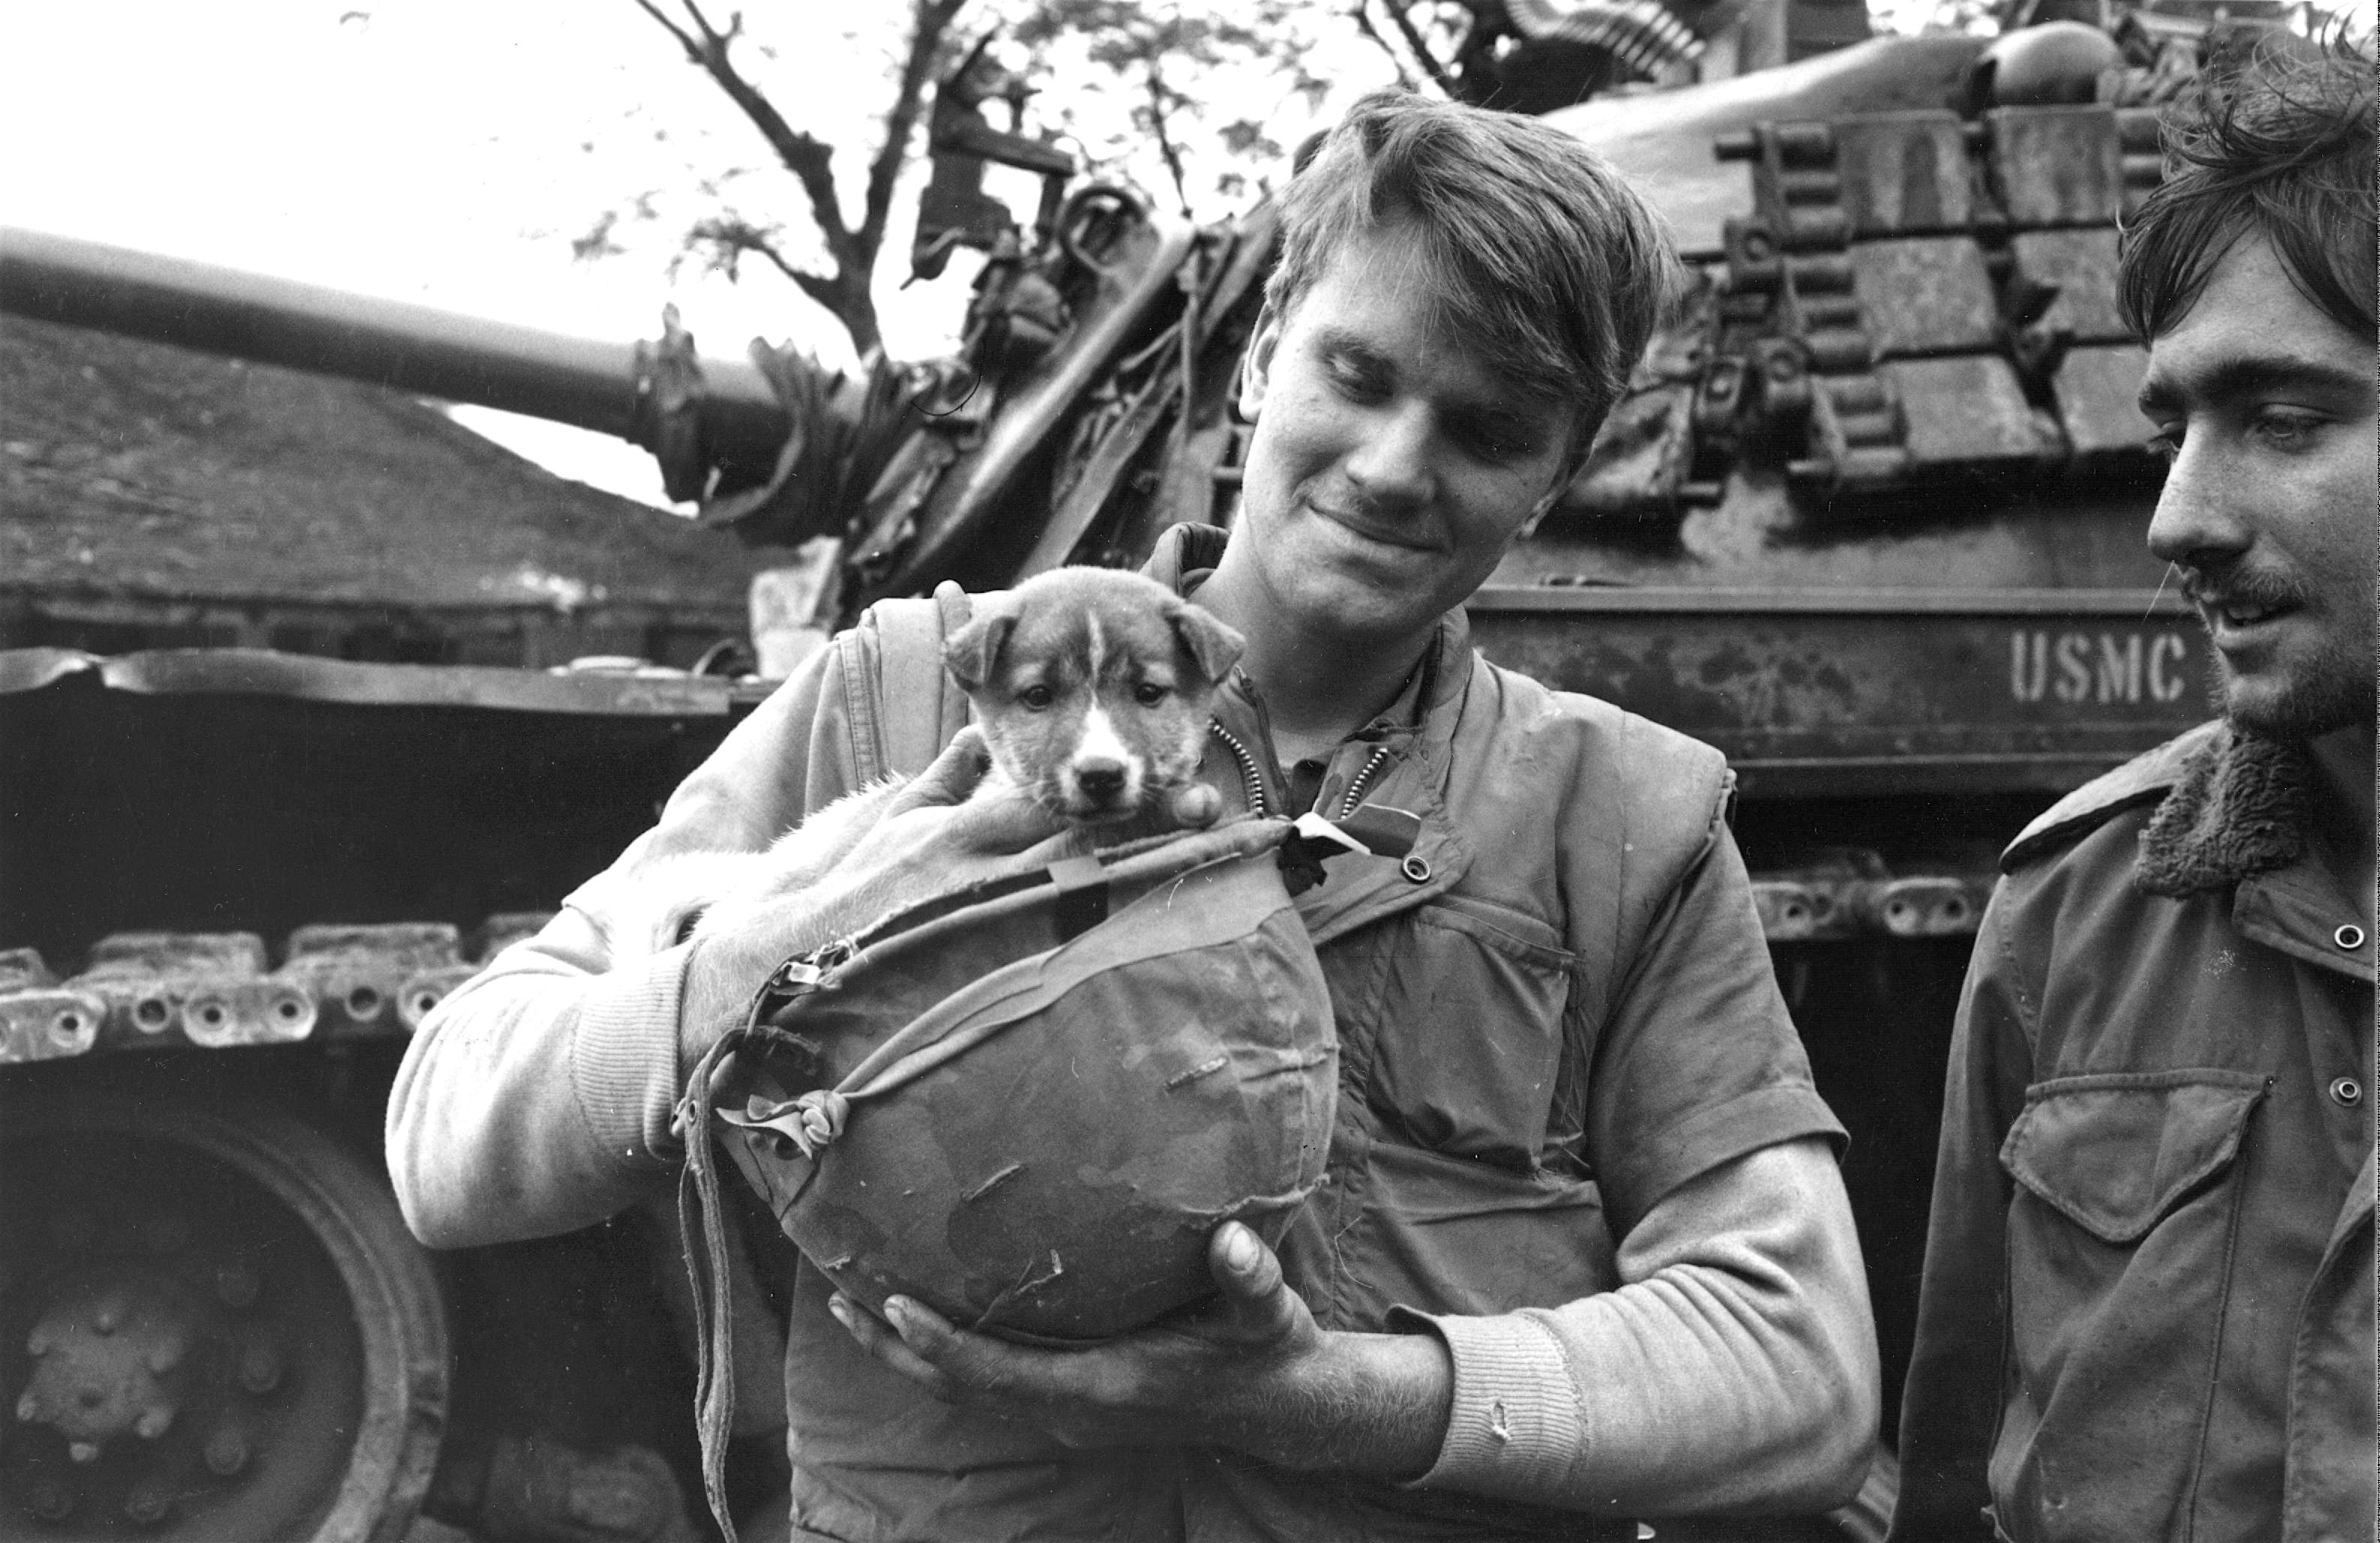 American marines with their pet dog in Vietnam.